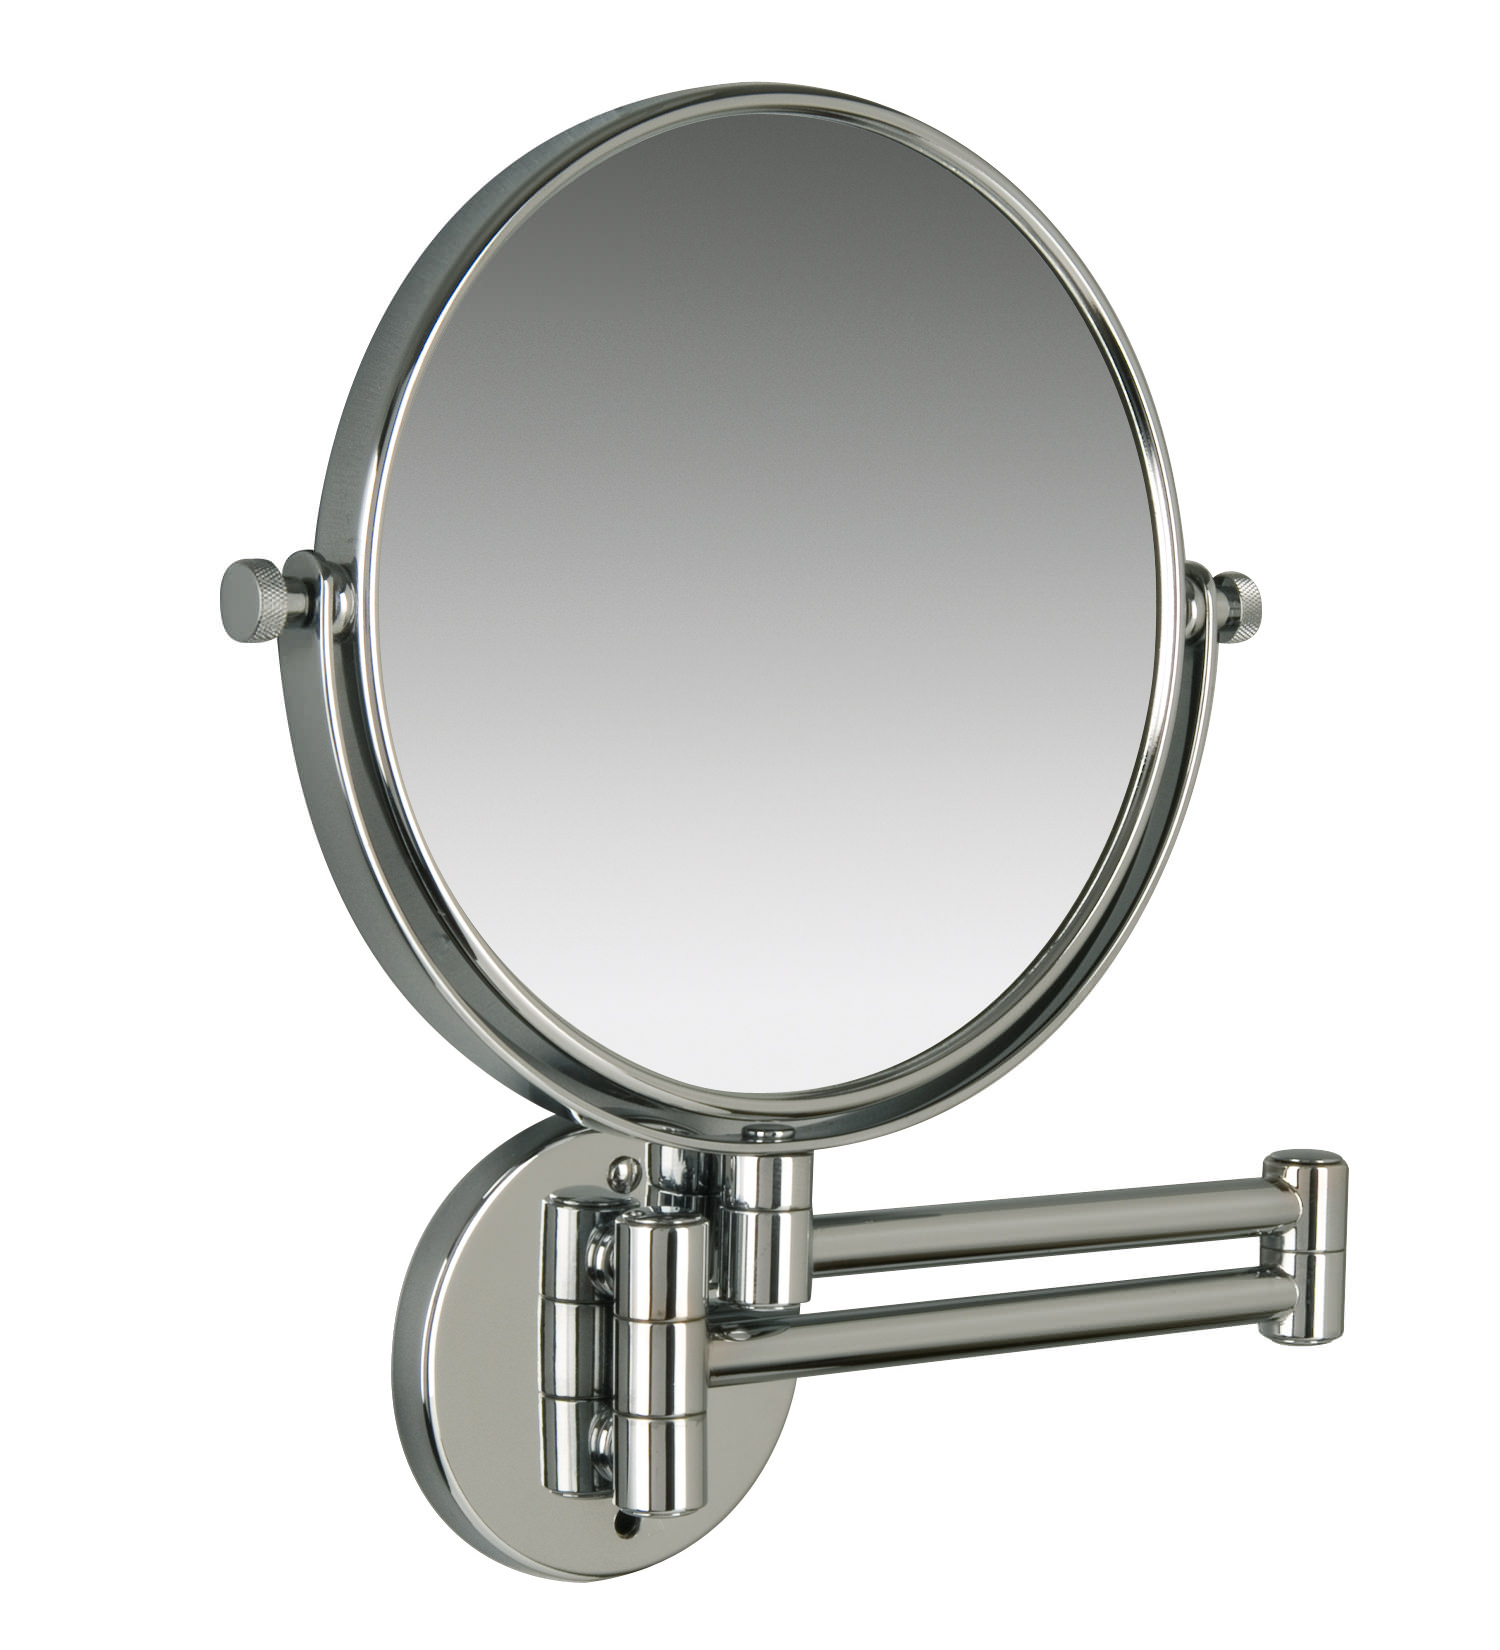 Miller classic modern 190mm round magnifying mirror 8781c for Shaving mirror